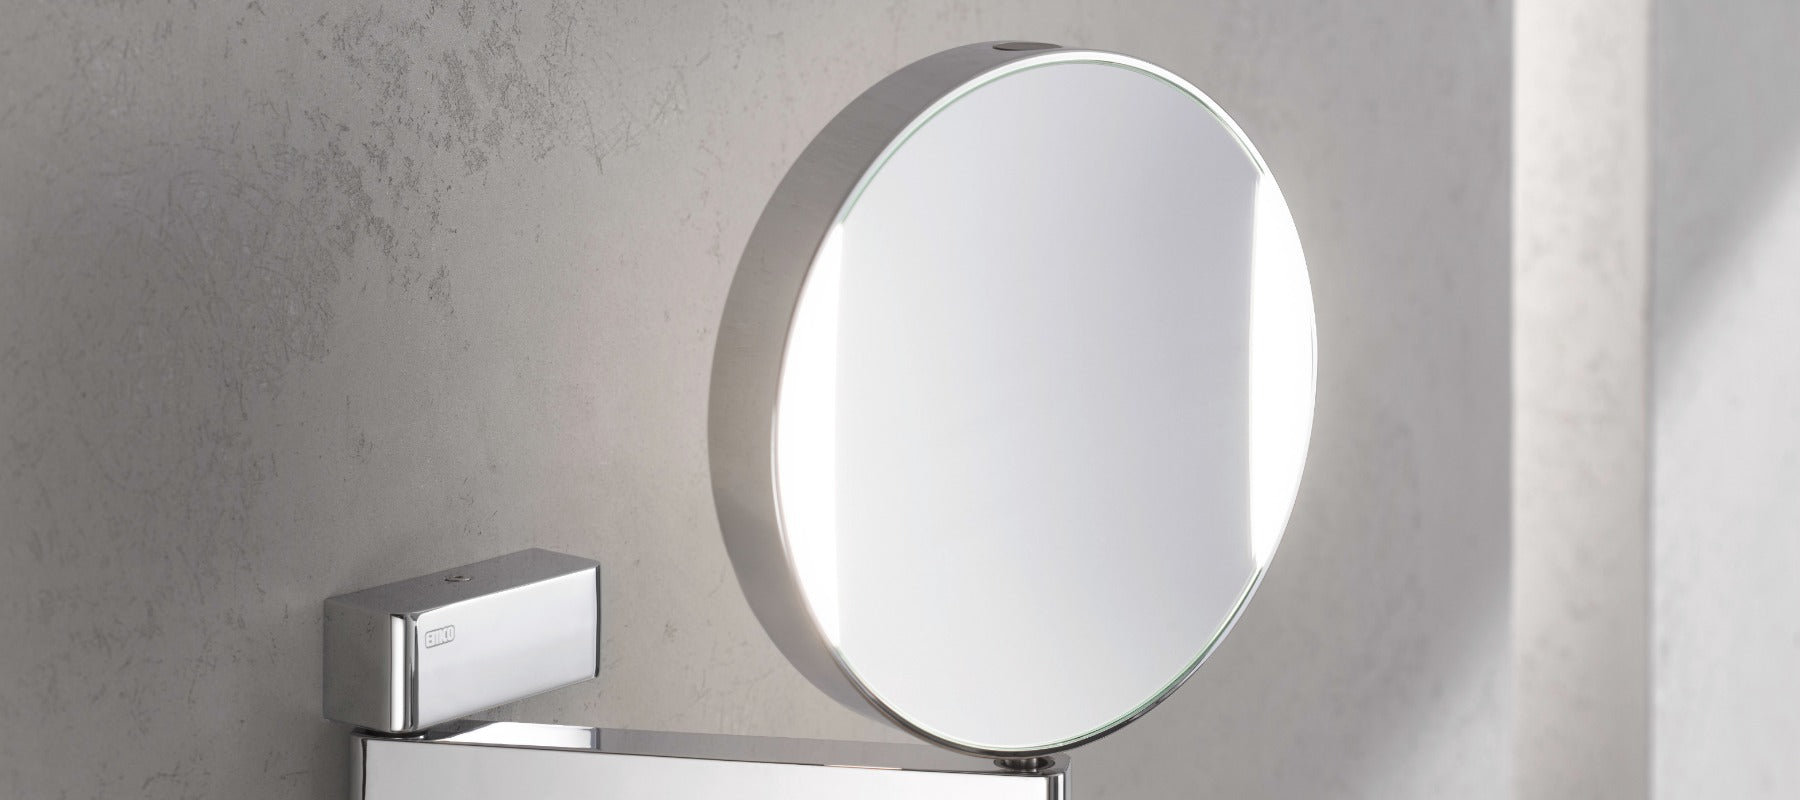 Emco Luxury Series LED Mirrors